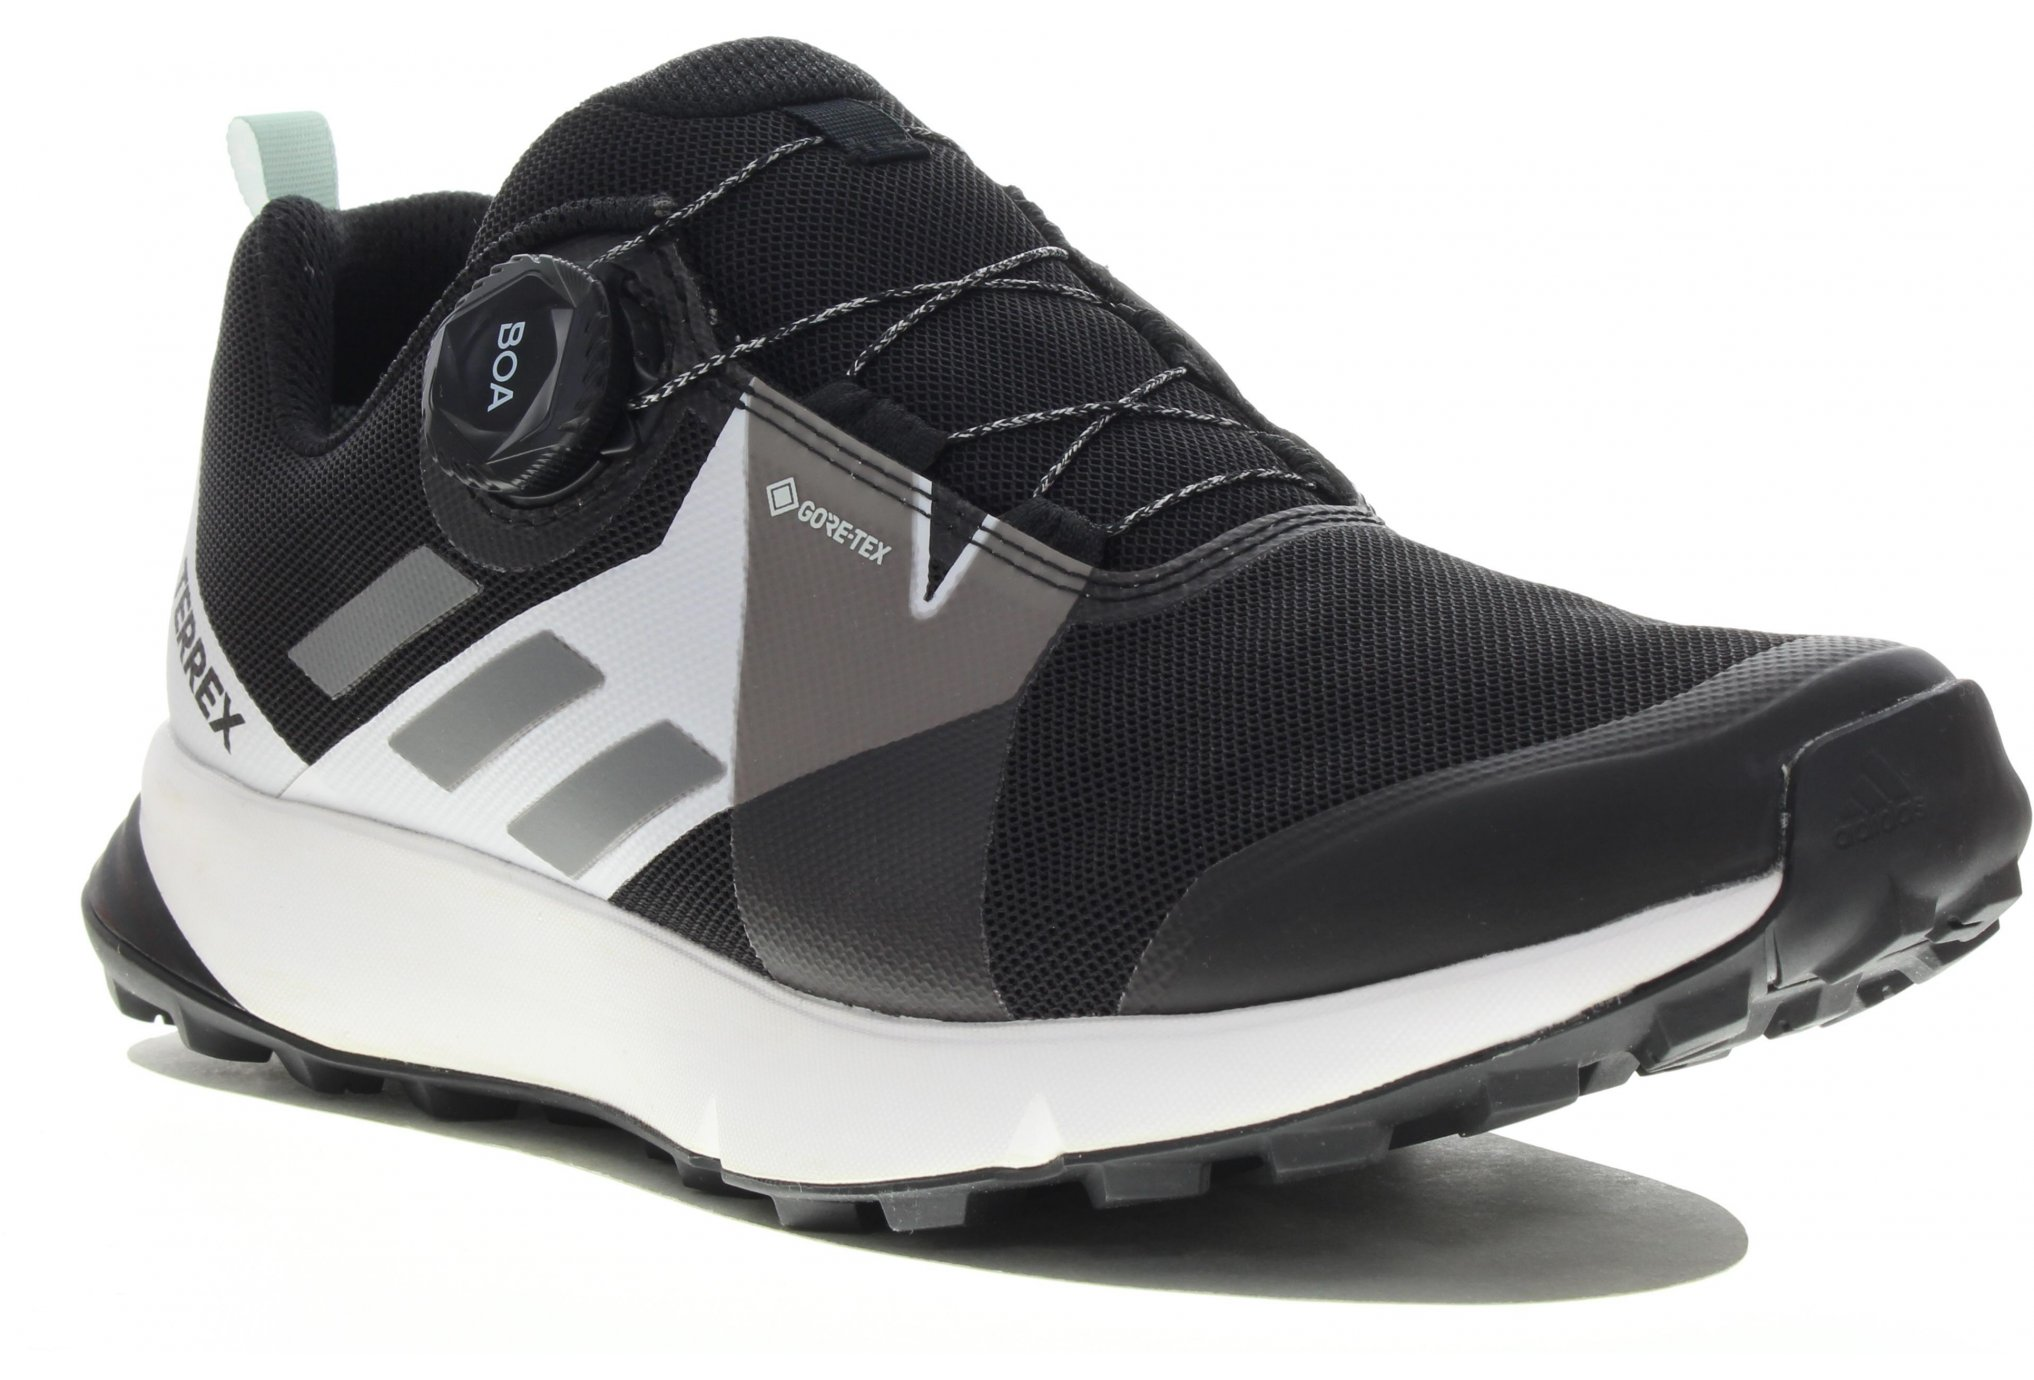 Bo 9 Adidas Outdoorcm7574 5Terrex Two OPZiXkuT